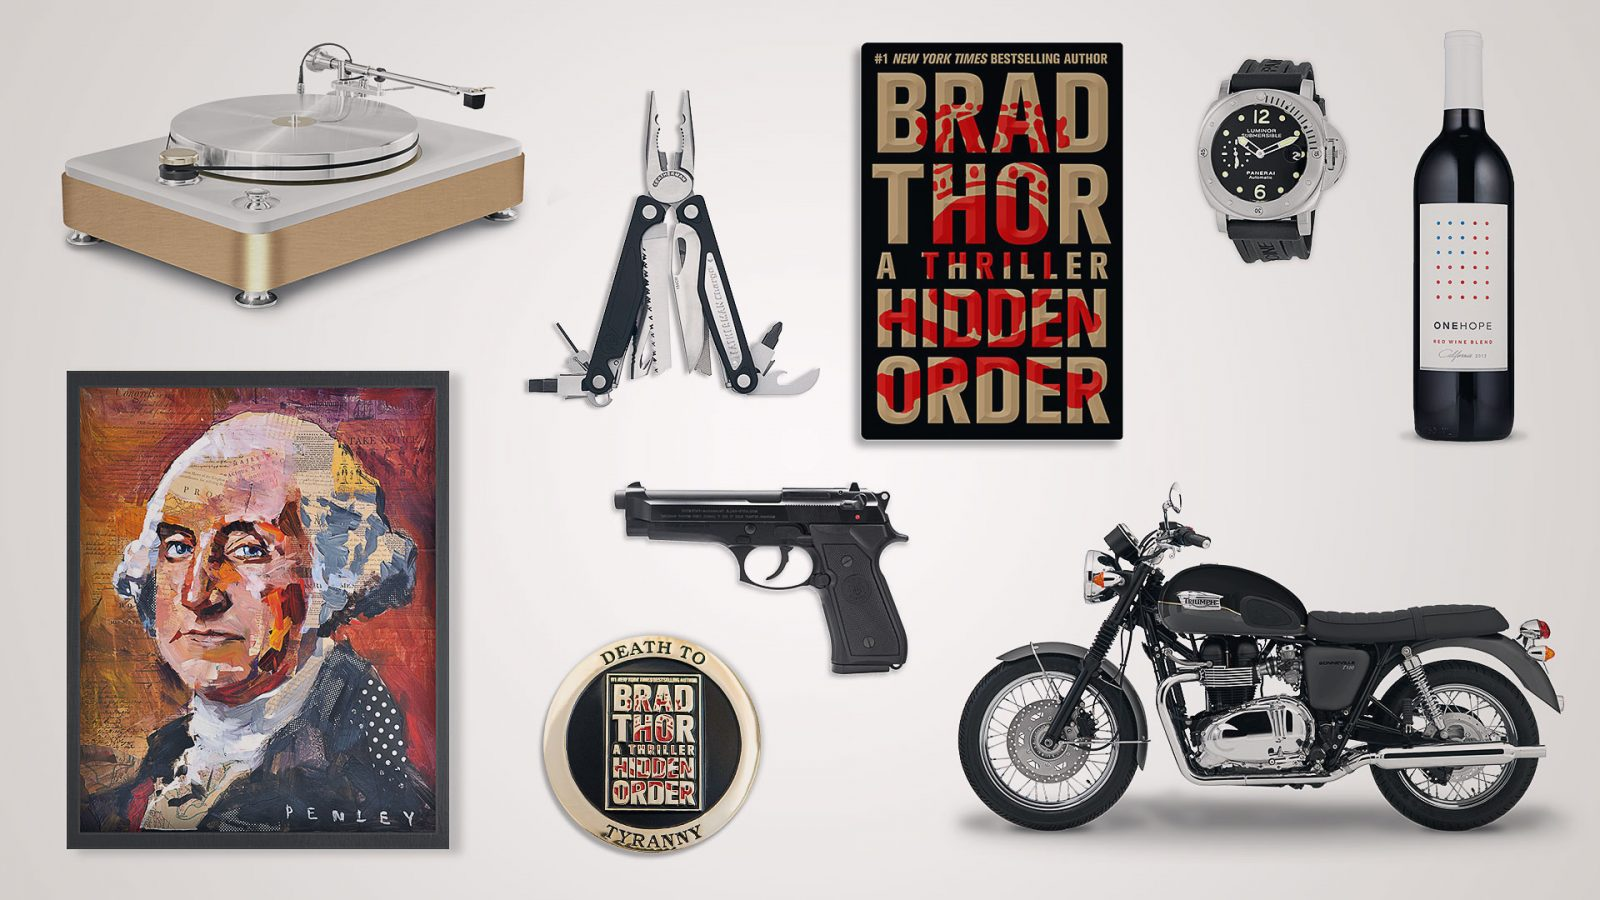 Top Gear from Brad Thor's Hidden Order